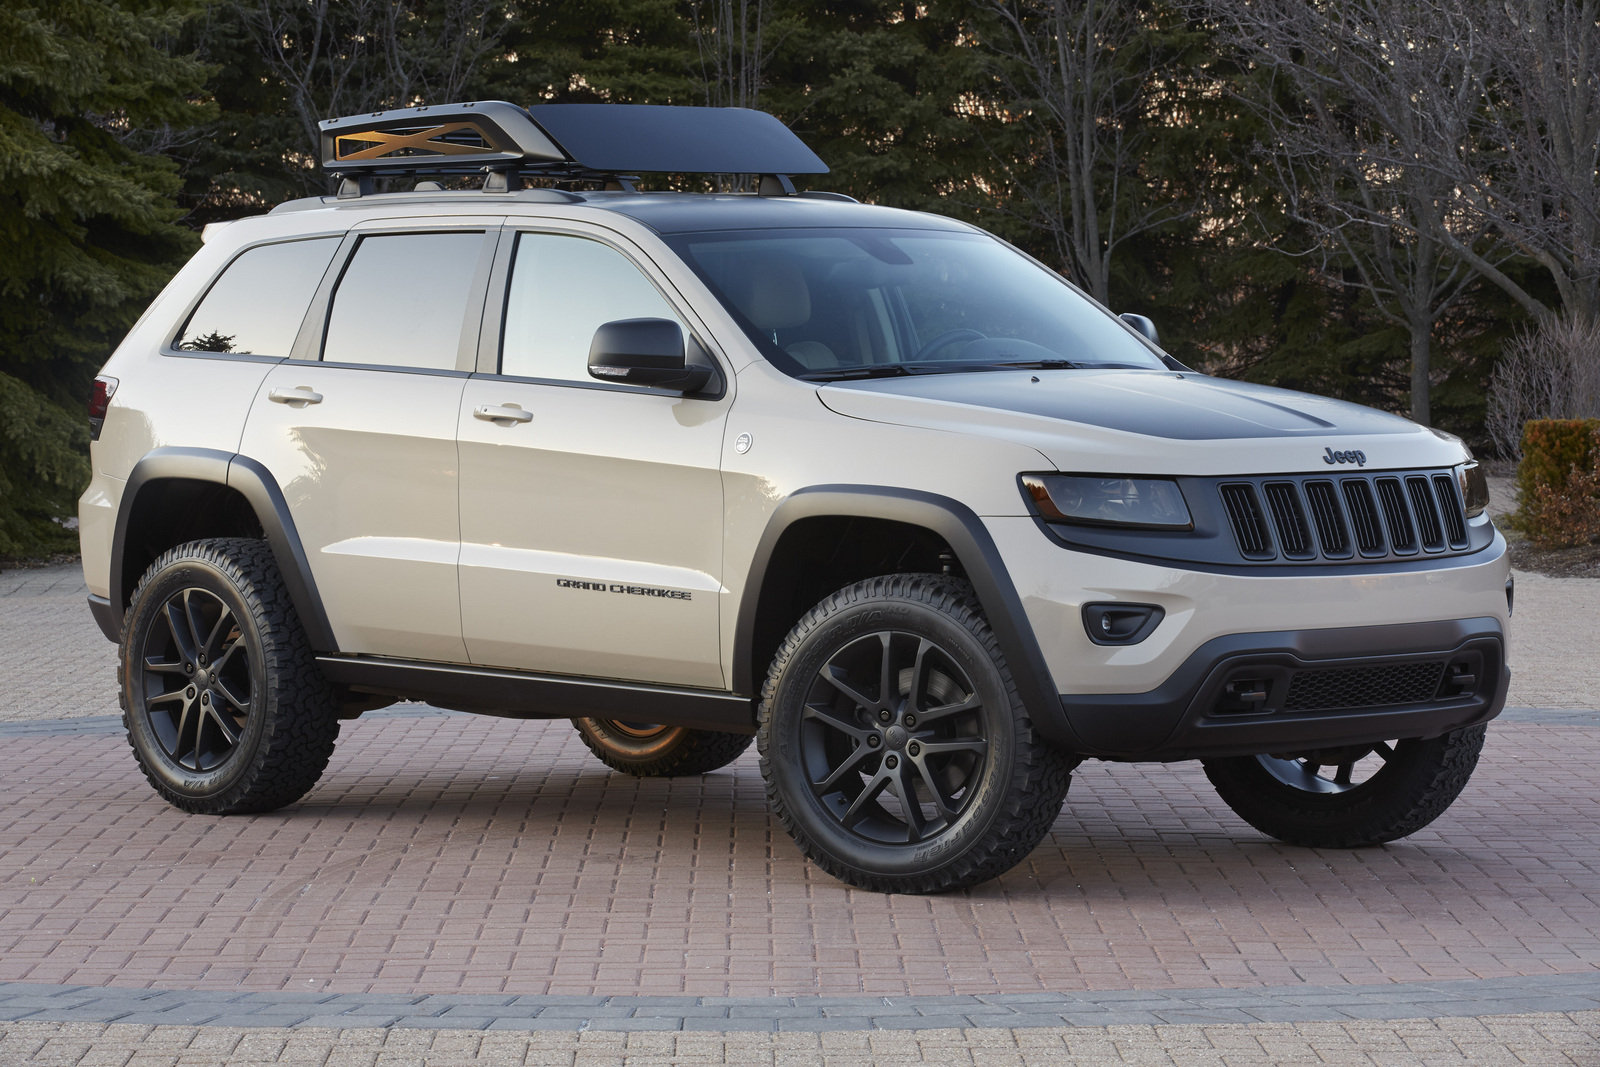 2014 jeep grand cherokee ecodiesel trail warrior review. Black Bedroom Furniture Sets. Home Design Ideas